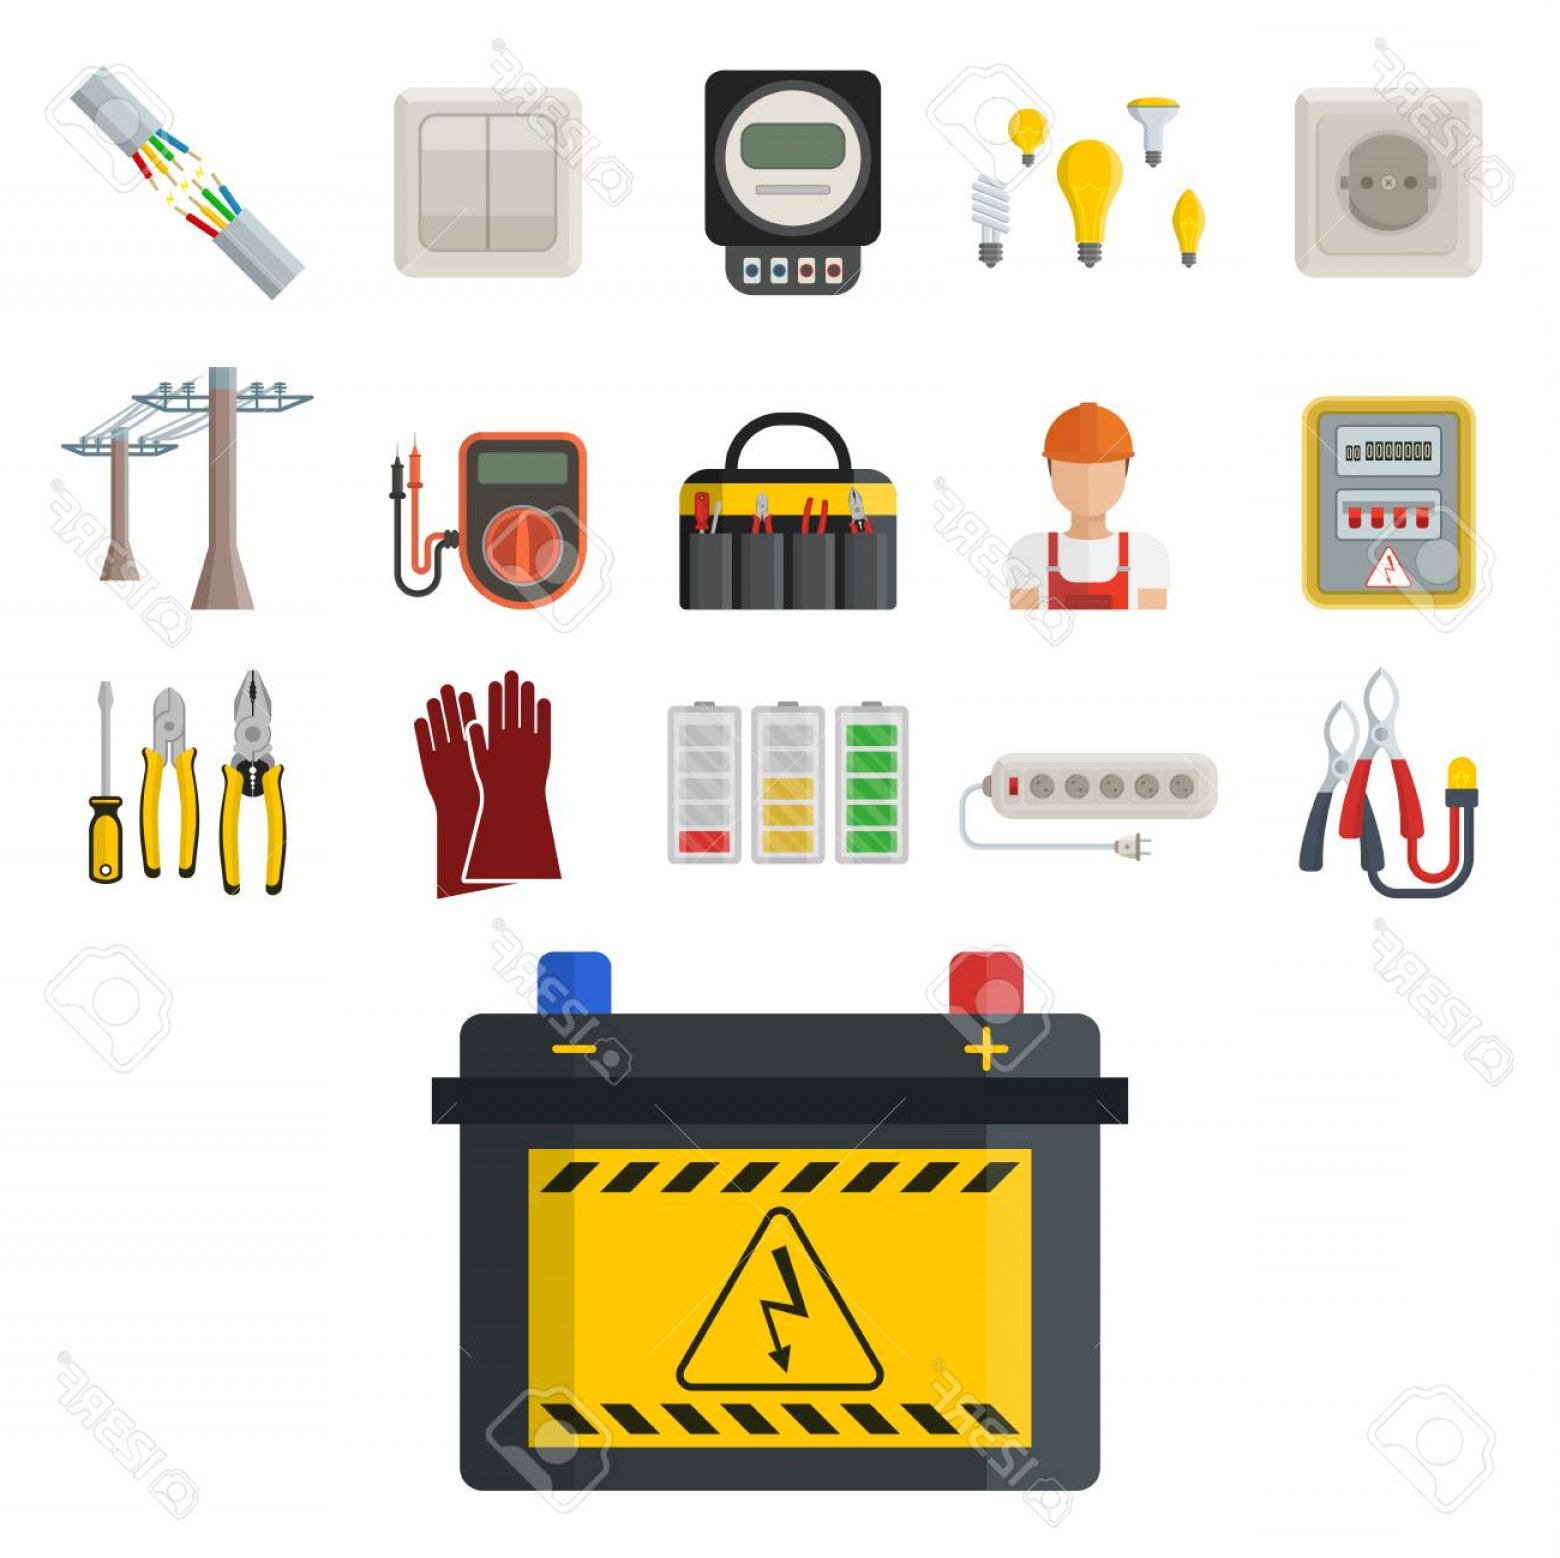 Battery Electricity Vector Images: Photostock Vector Energy Electricity Vector Power Icons Battery Illustration Industrial Electrician Voltage Electricit